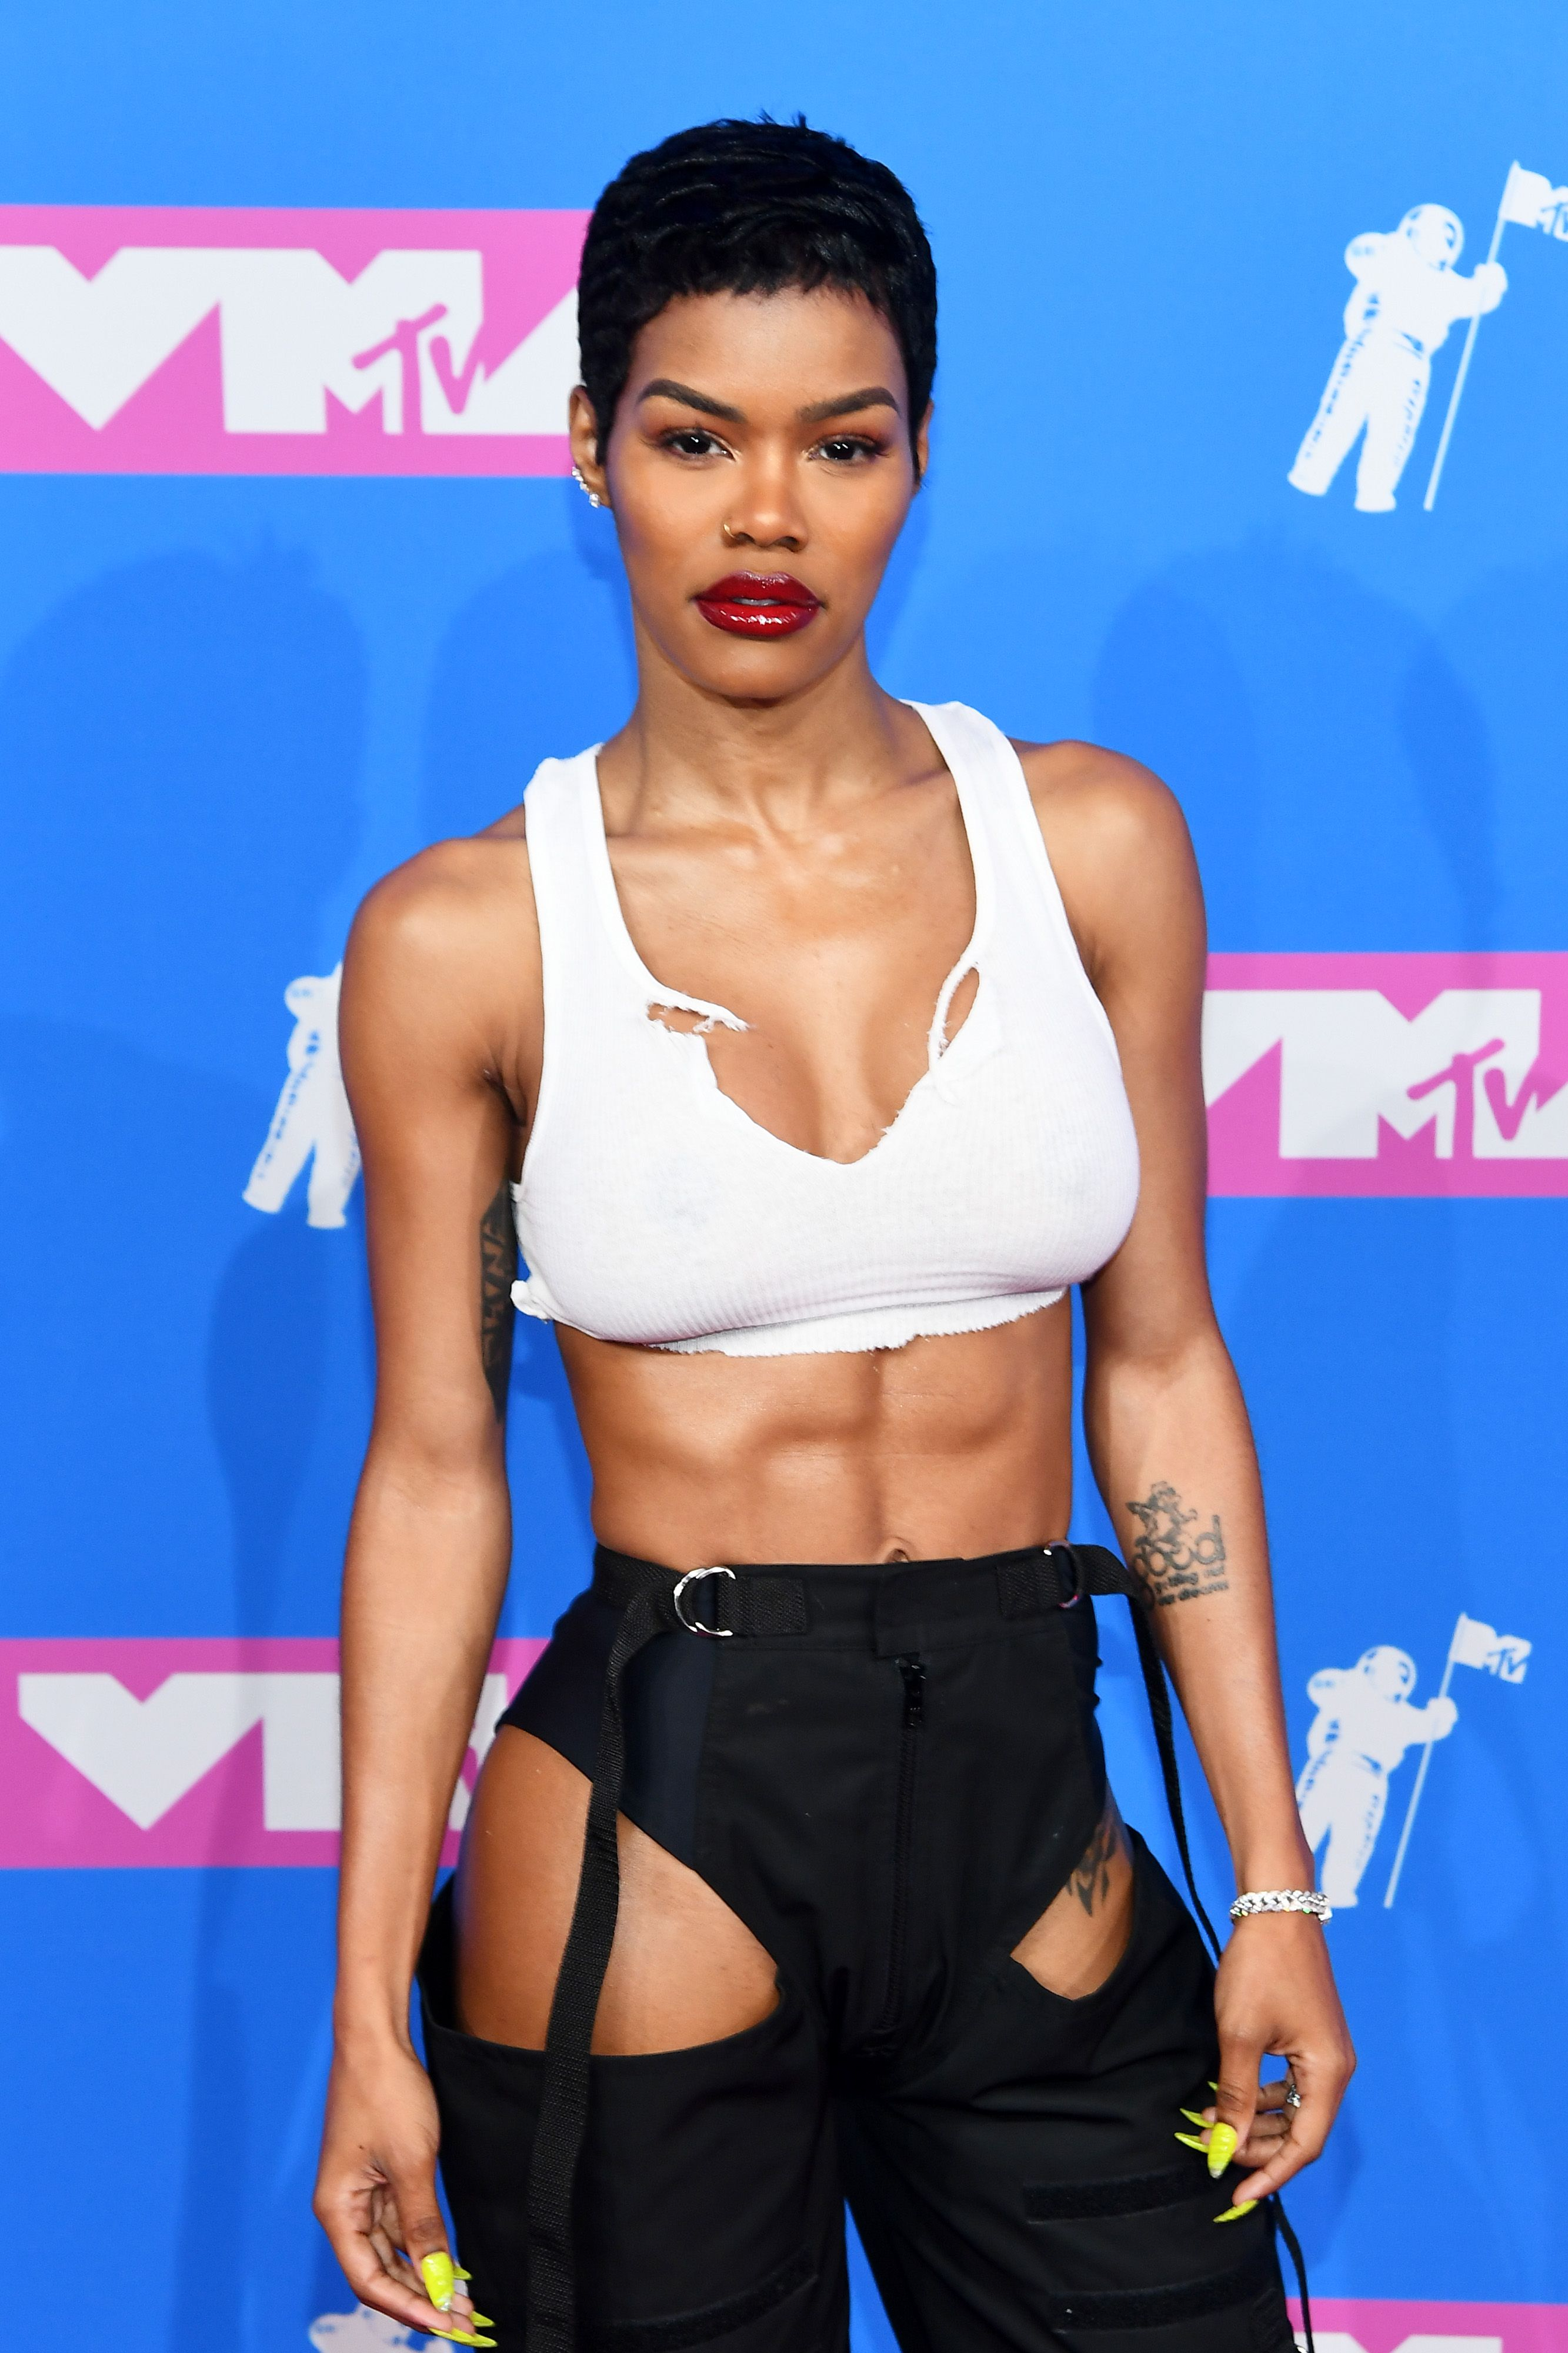 Image result for teyana taylor abs